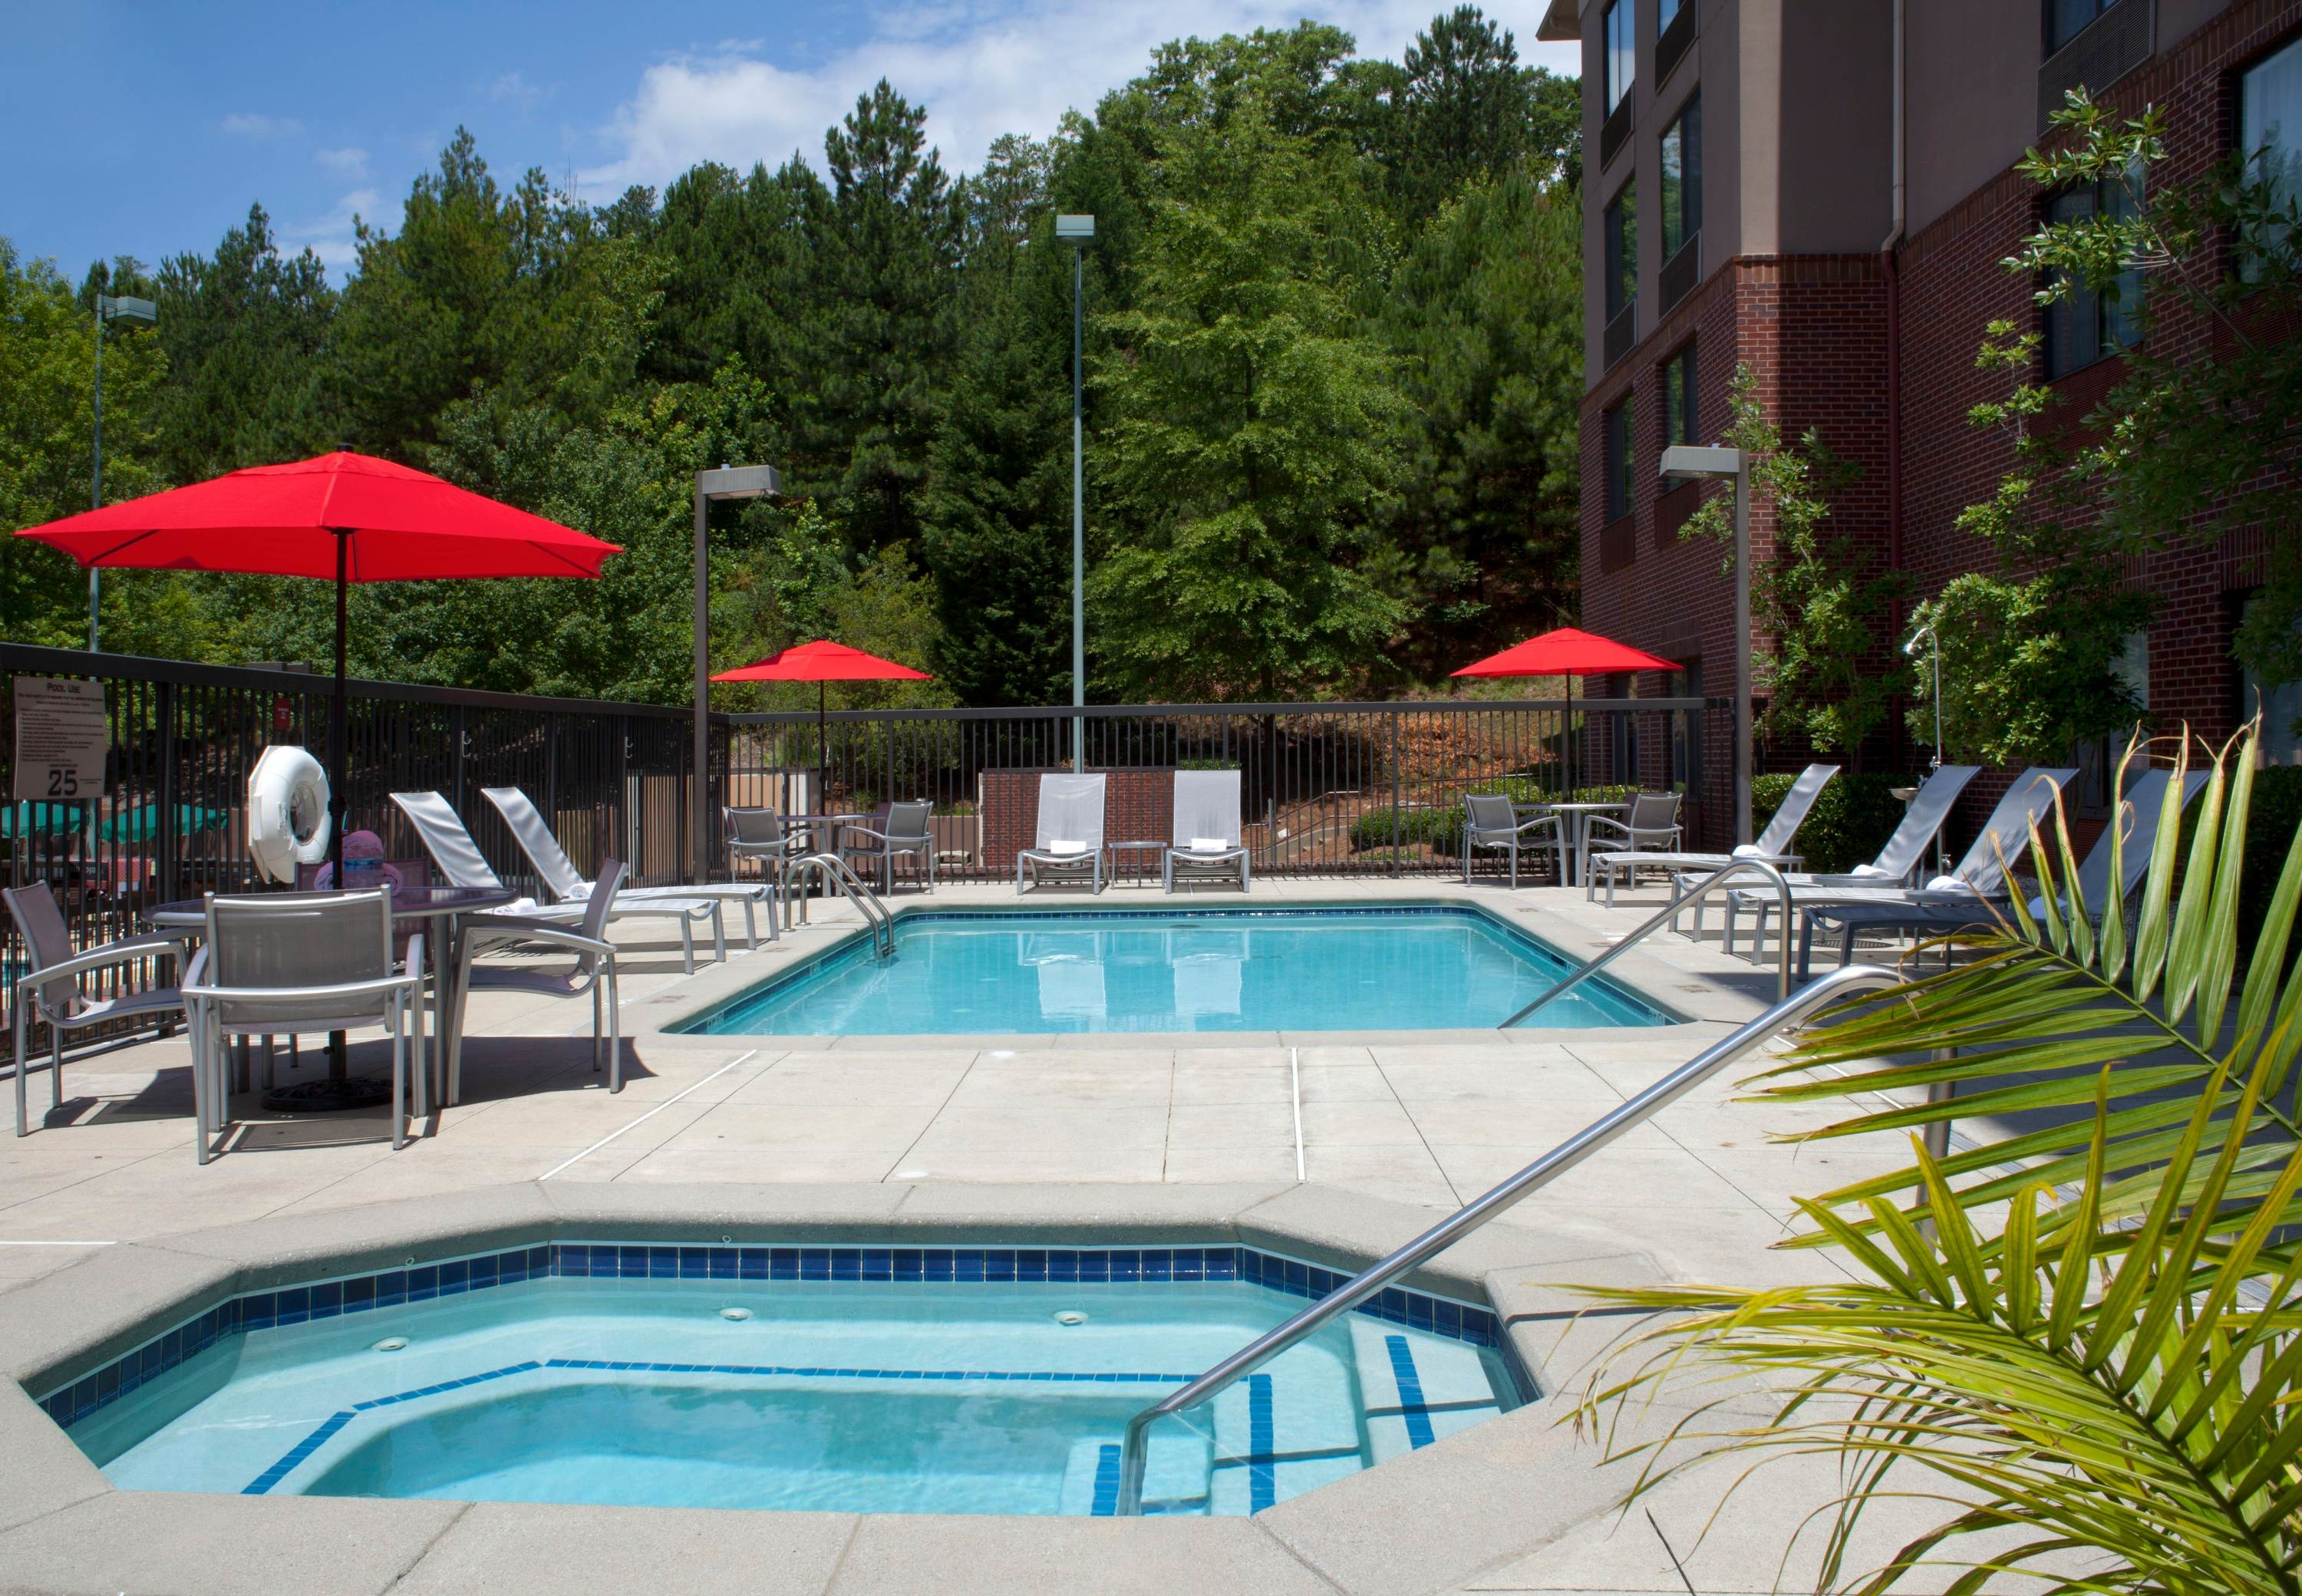 SpringHill Suites by Marriott Atlanta Buford/Mall of Georgia image 2